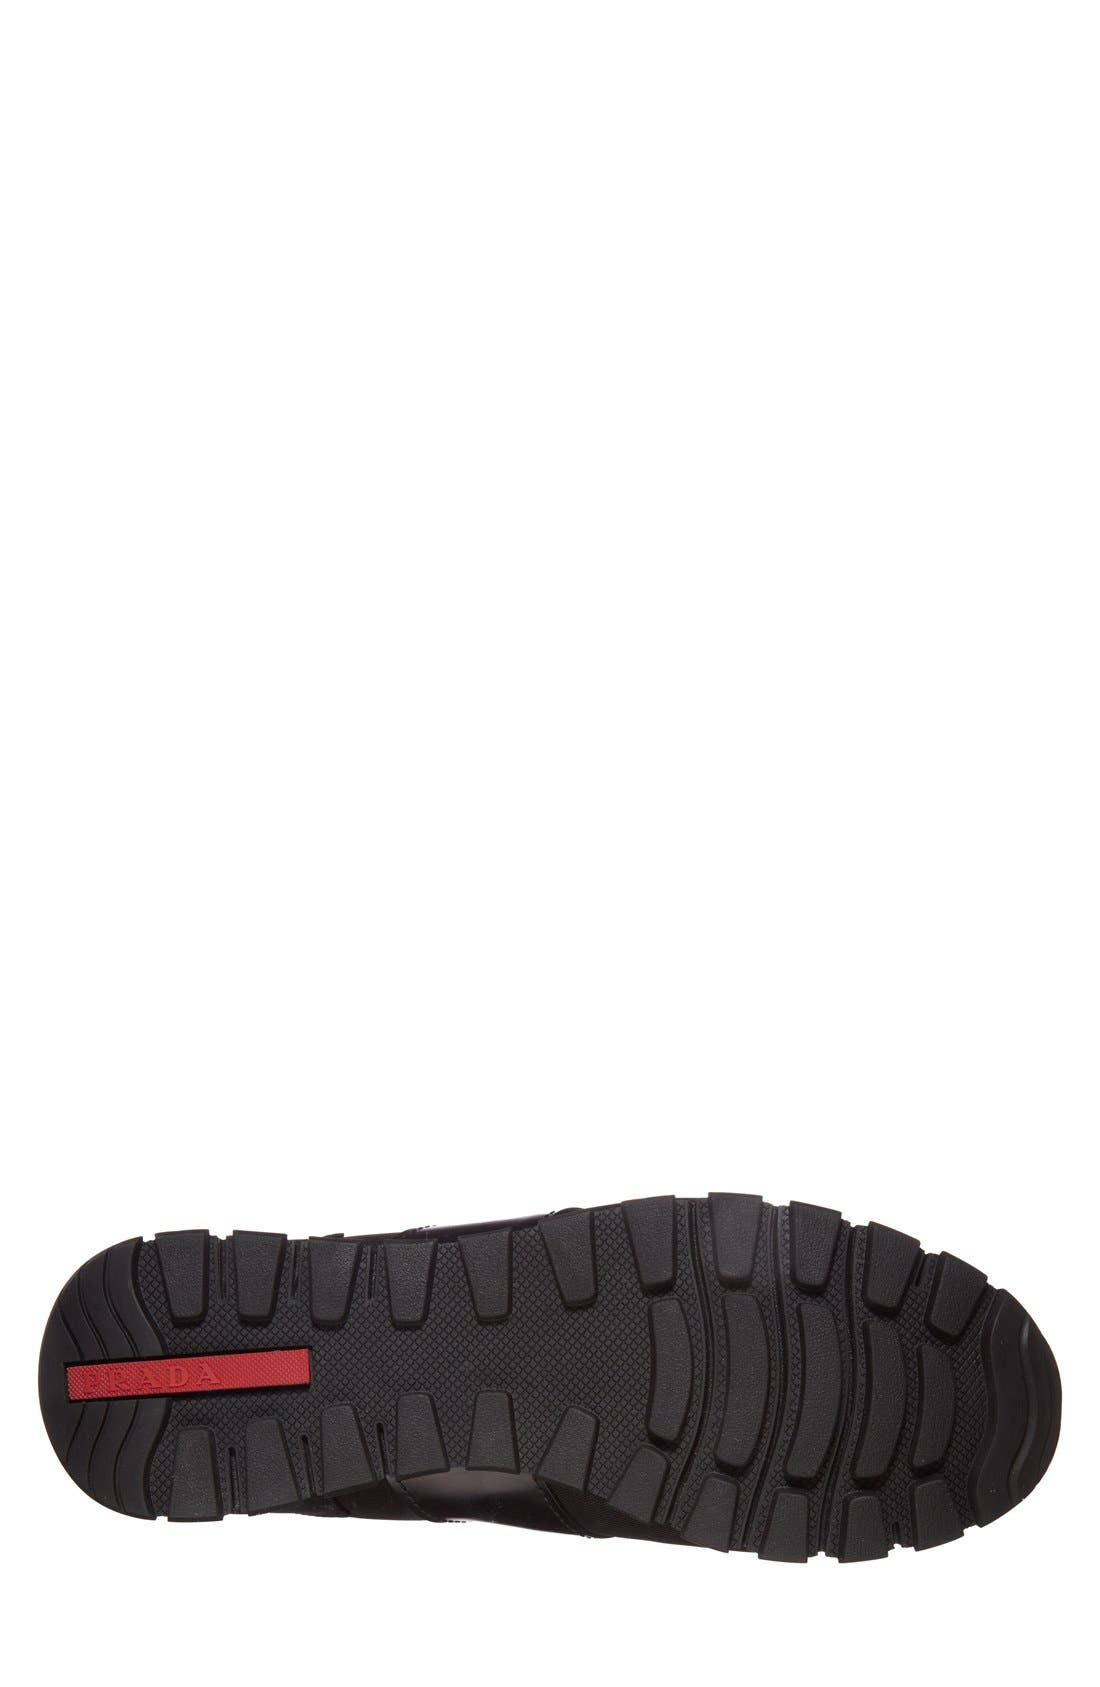 PRADA LINEA ROSSA,                             Runner Sneaker,                             Alternate thumbnail 4, color,                             001